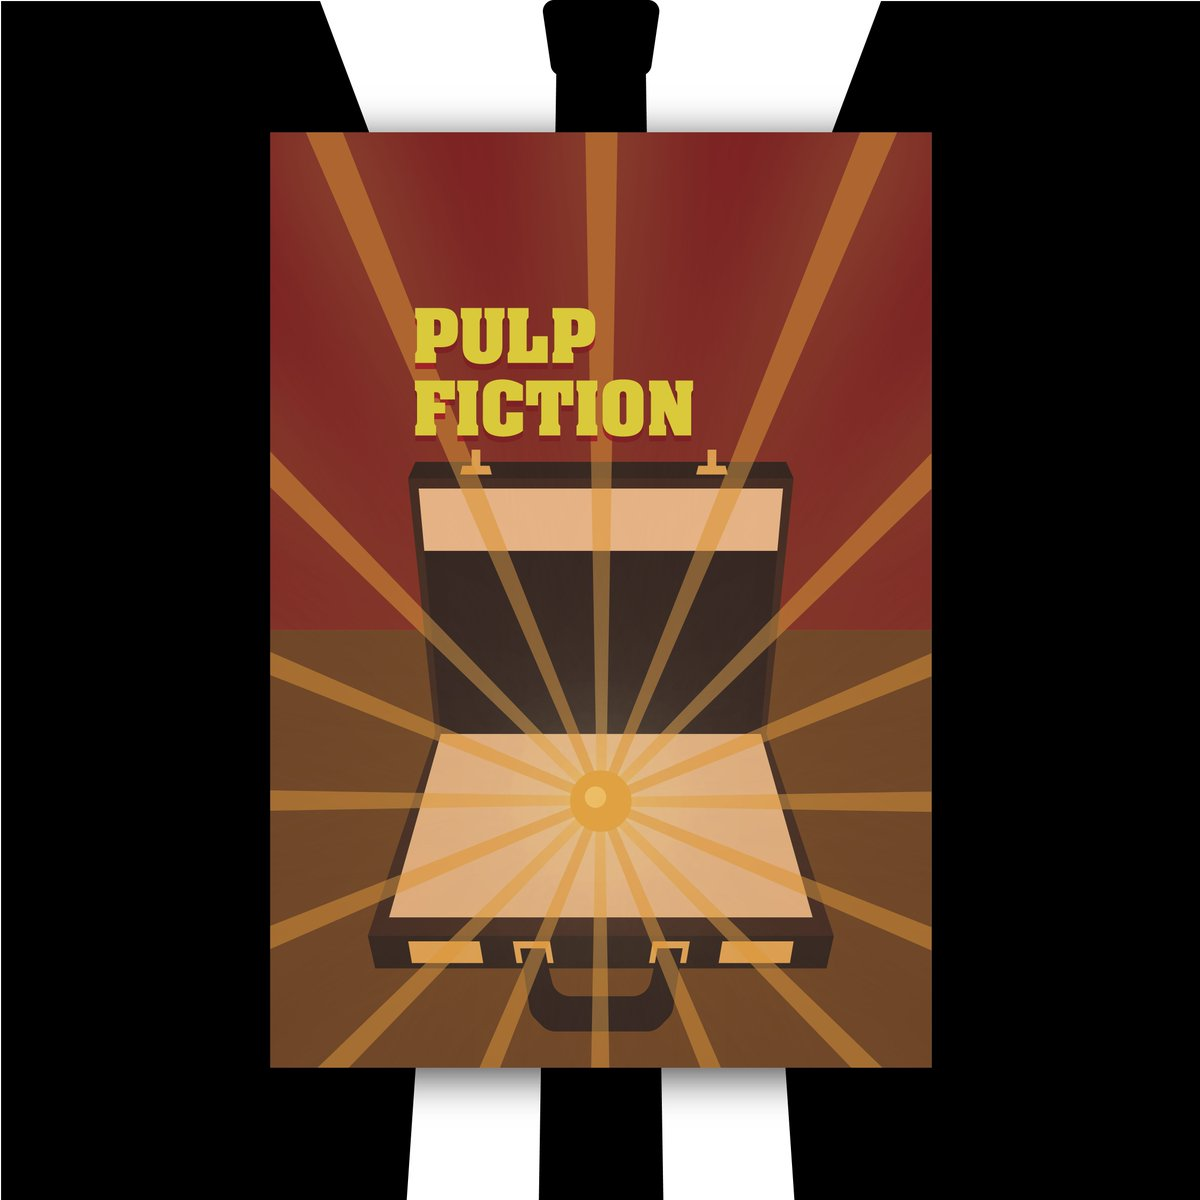 Oops Pulp Fiction What Do You Think Was Actually In The Suitcase Wollongong Pulpfiction Conceptart Poster Posters Posterdesign Posterart